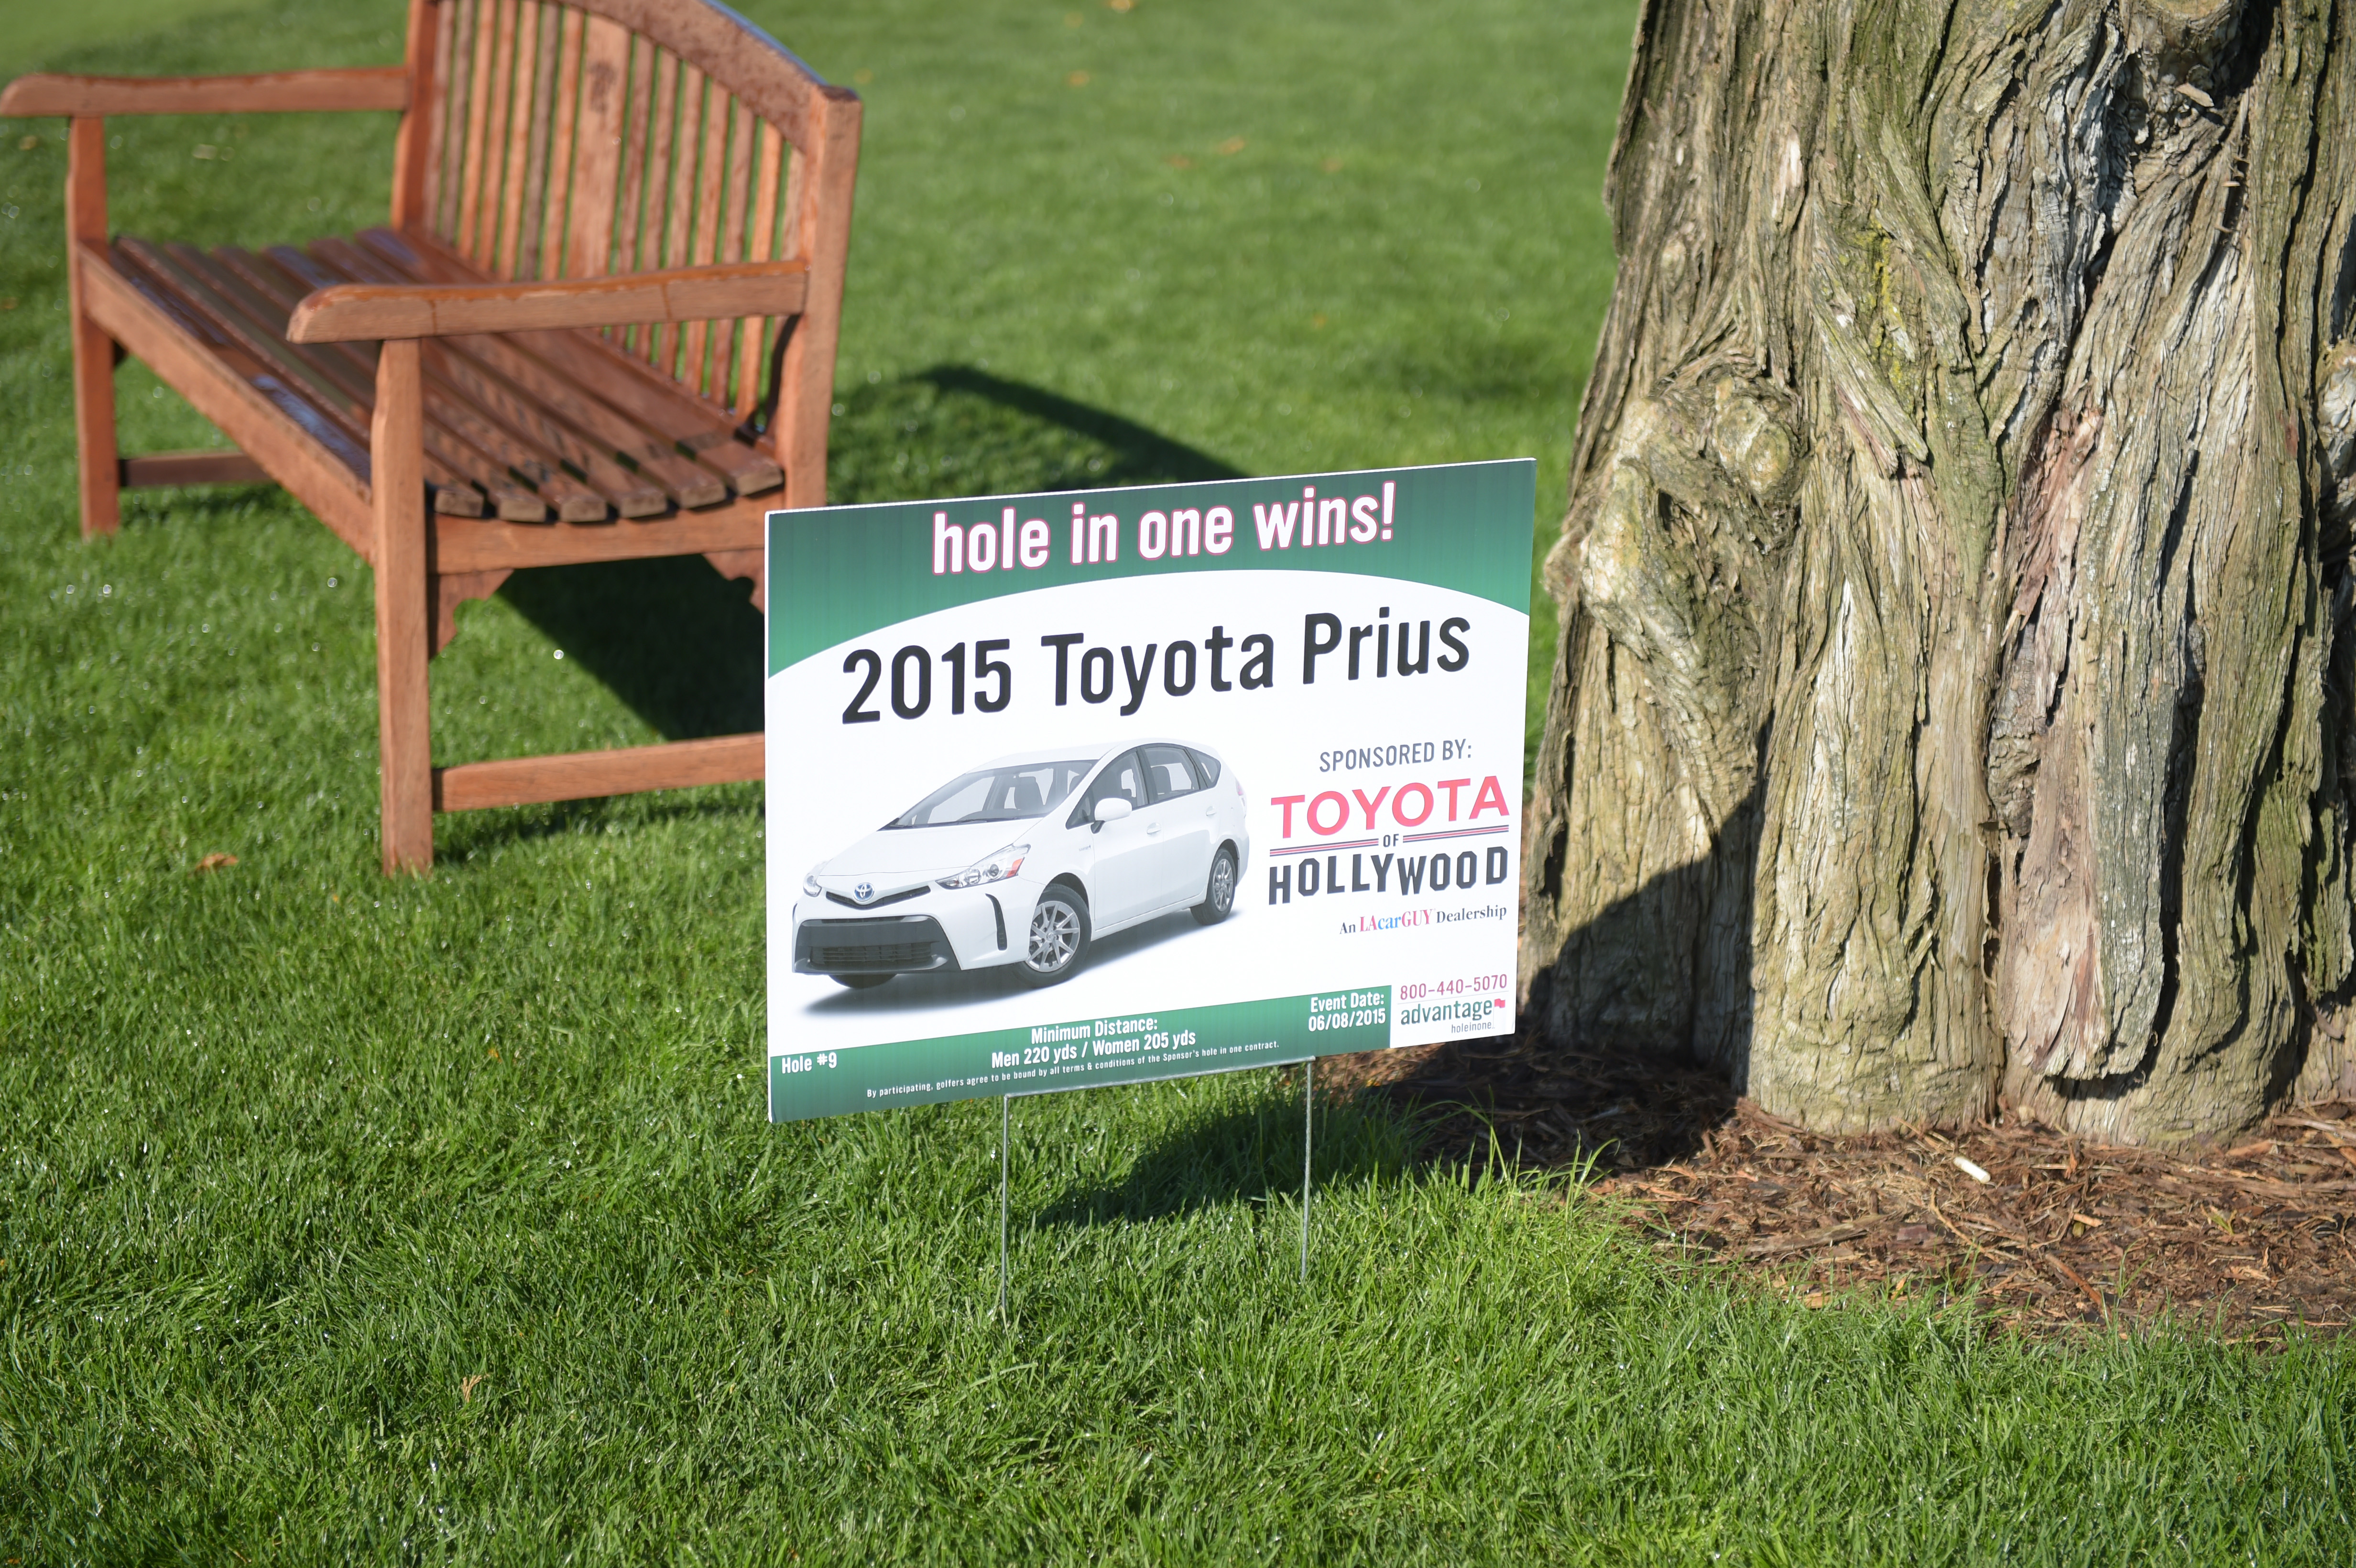 Toyota of Hollywood sponsors a hole-in-one at The Screen Actors Guild Foundation's 6th Annual Los Angeles Golf Classic on June 8, 2015 in Burbank, California. (Photo by Jason Kempin/Getty Images for The Screen Actors Guild Foundation)